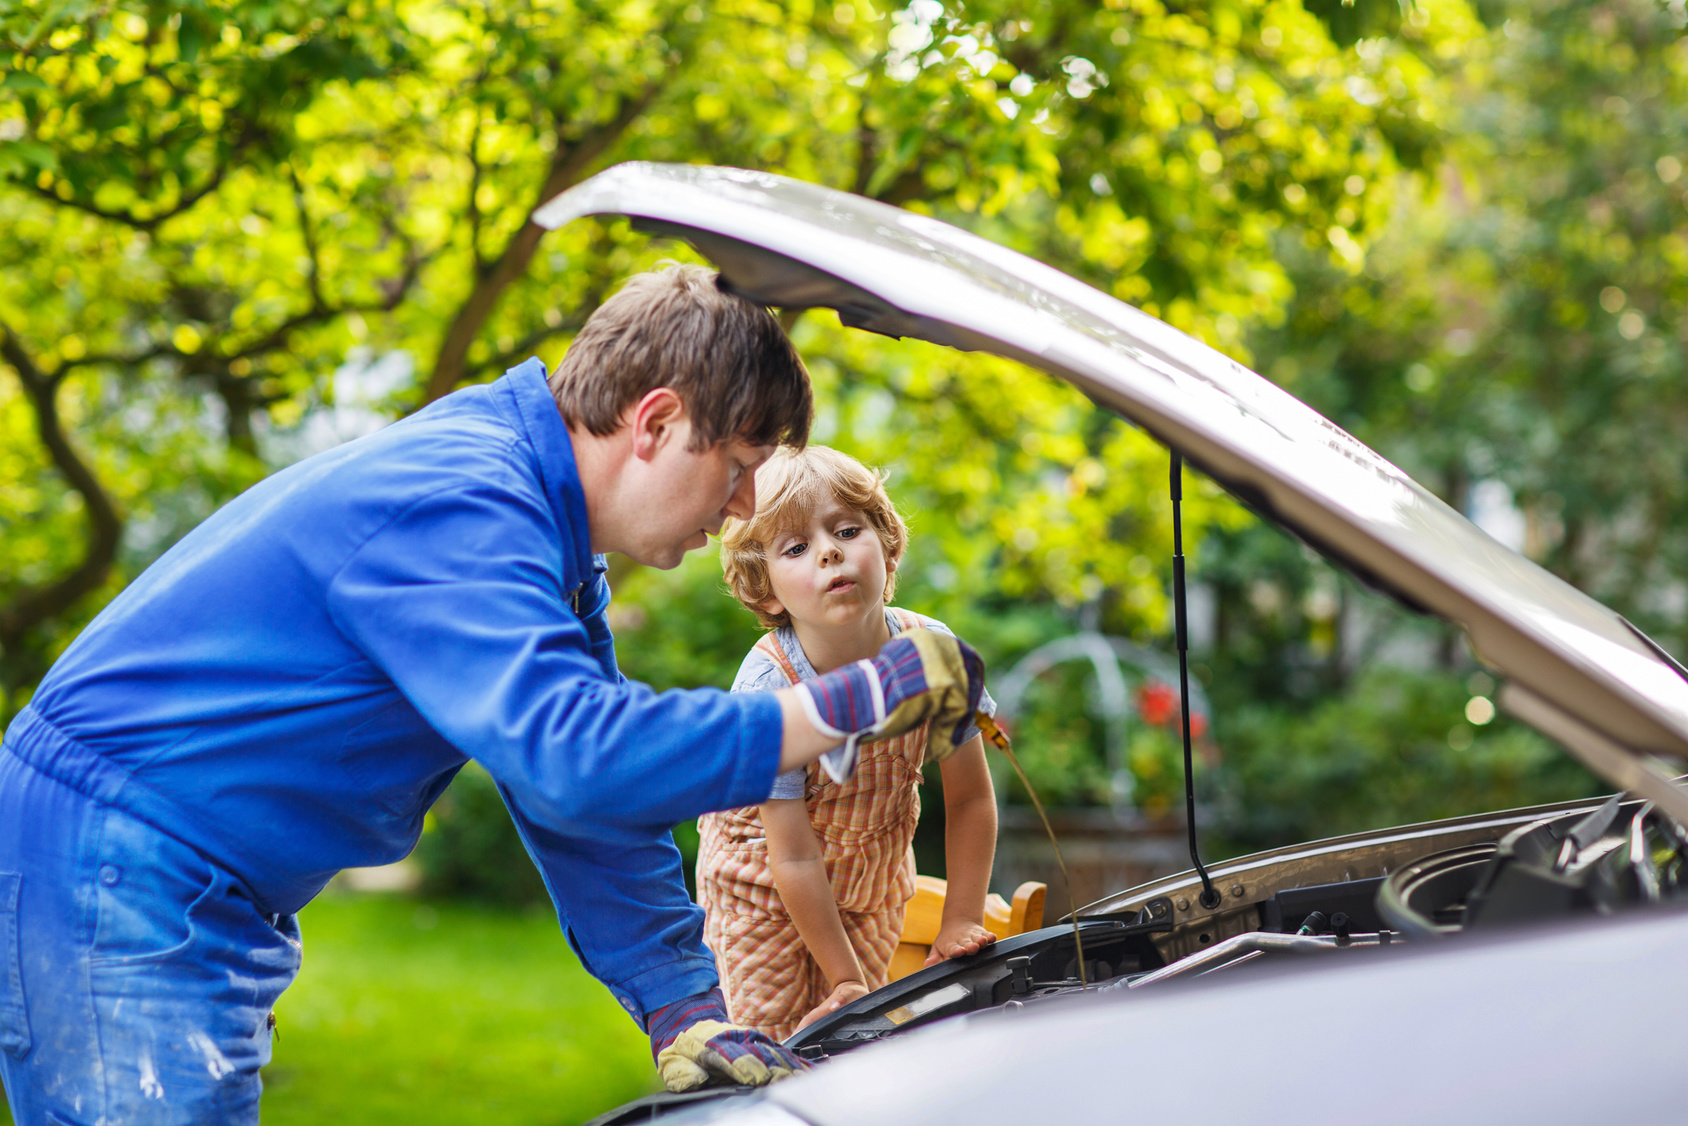 Father teaching son car care